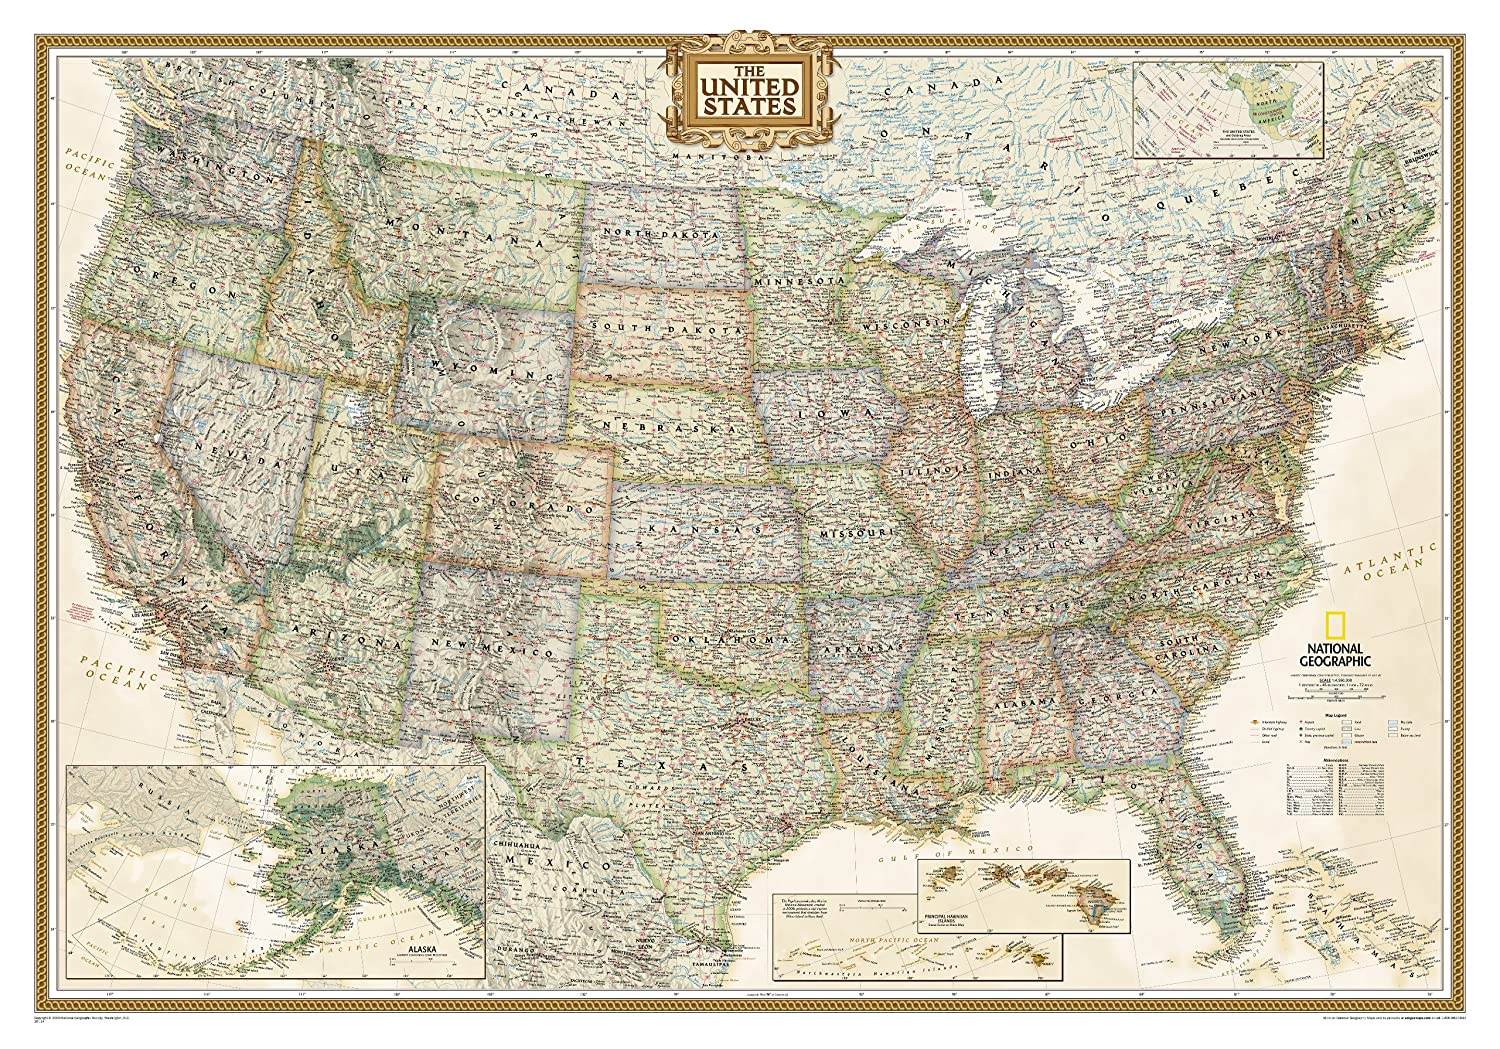 USA Executive Map 1 : 4 560 000 Martina Hertel National Geographic United States of America REFERENCE / Atlases